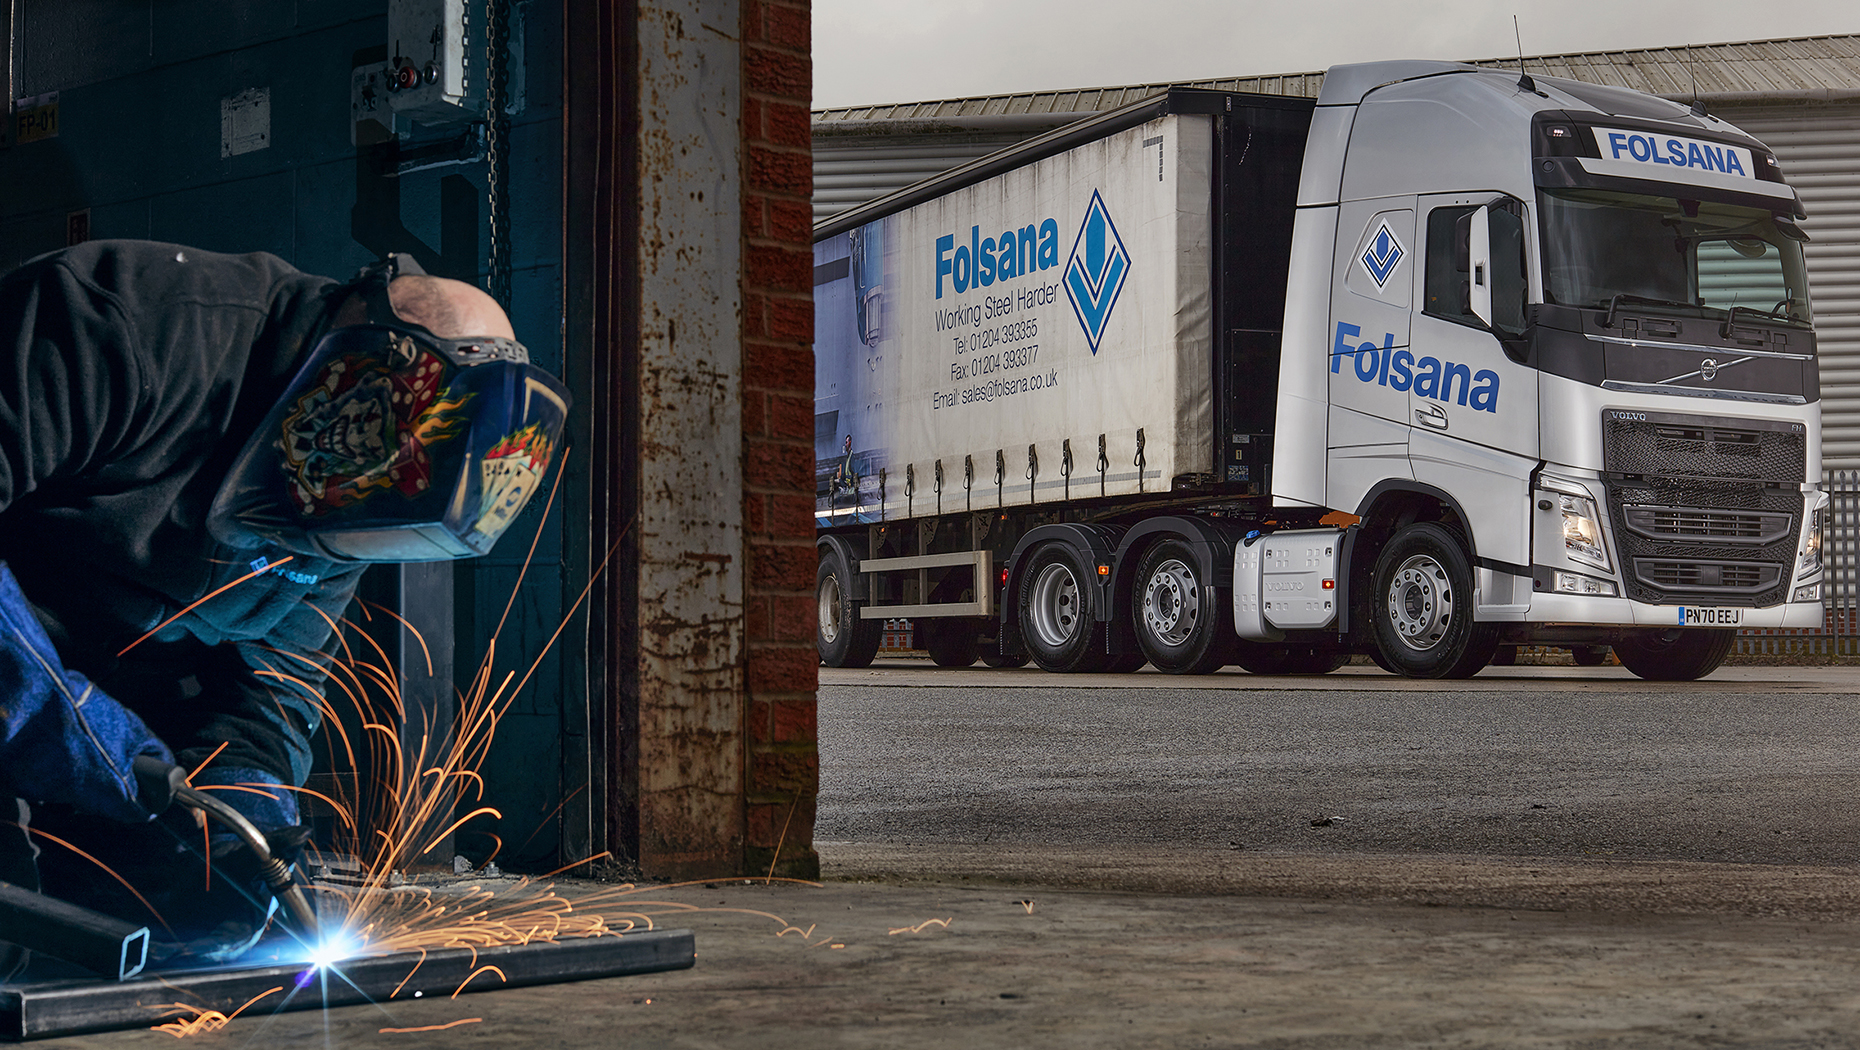 Folsana pressed sections upgrades with new Volvo FH